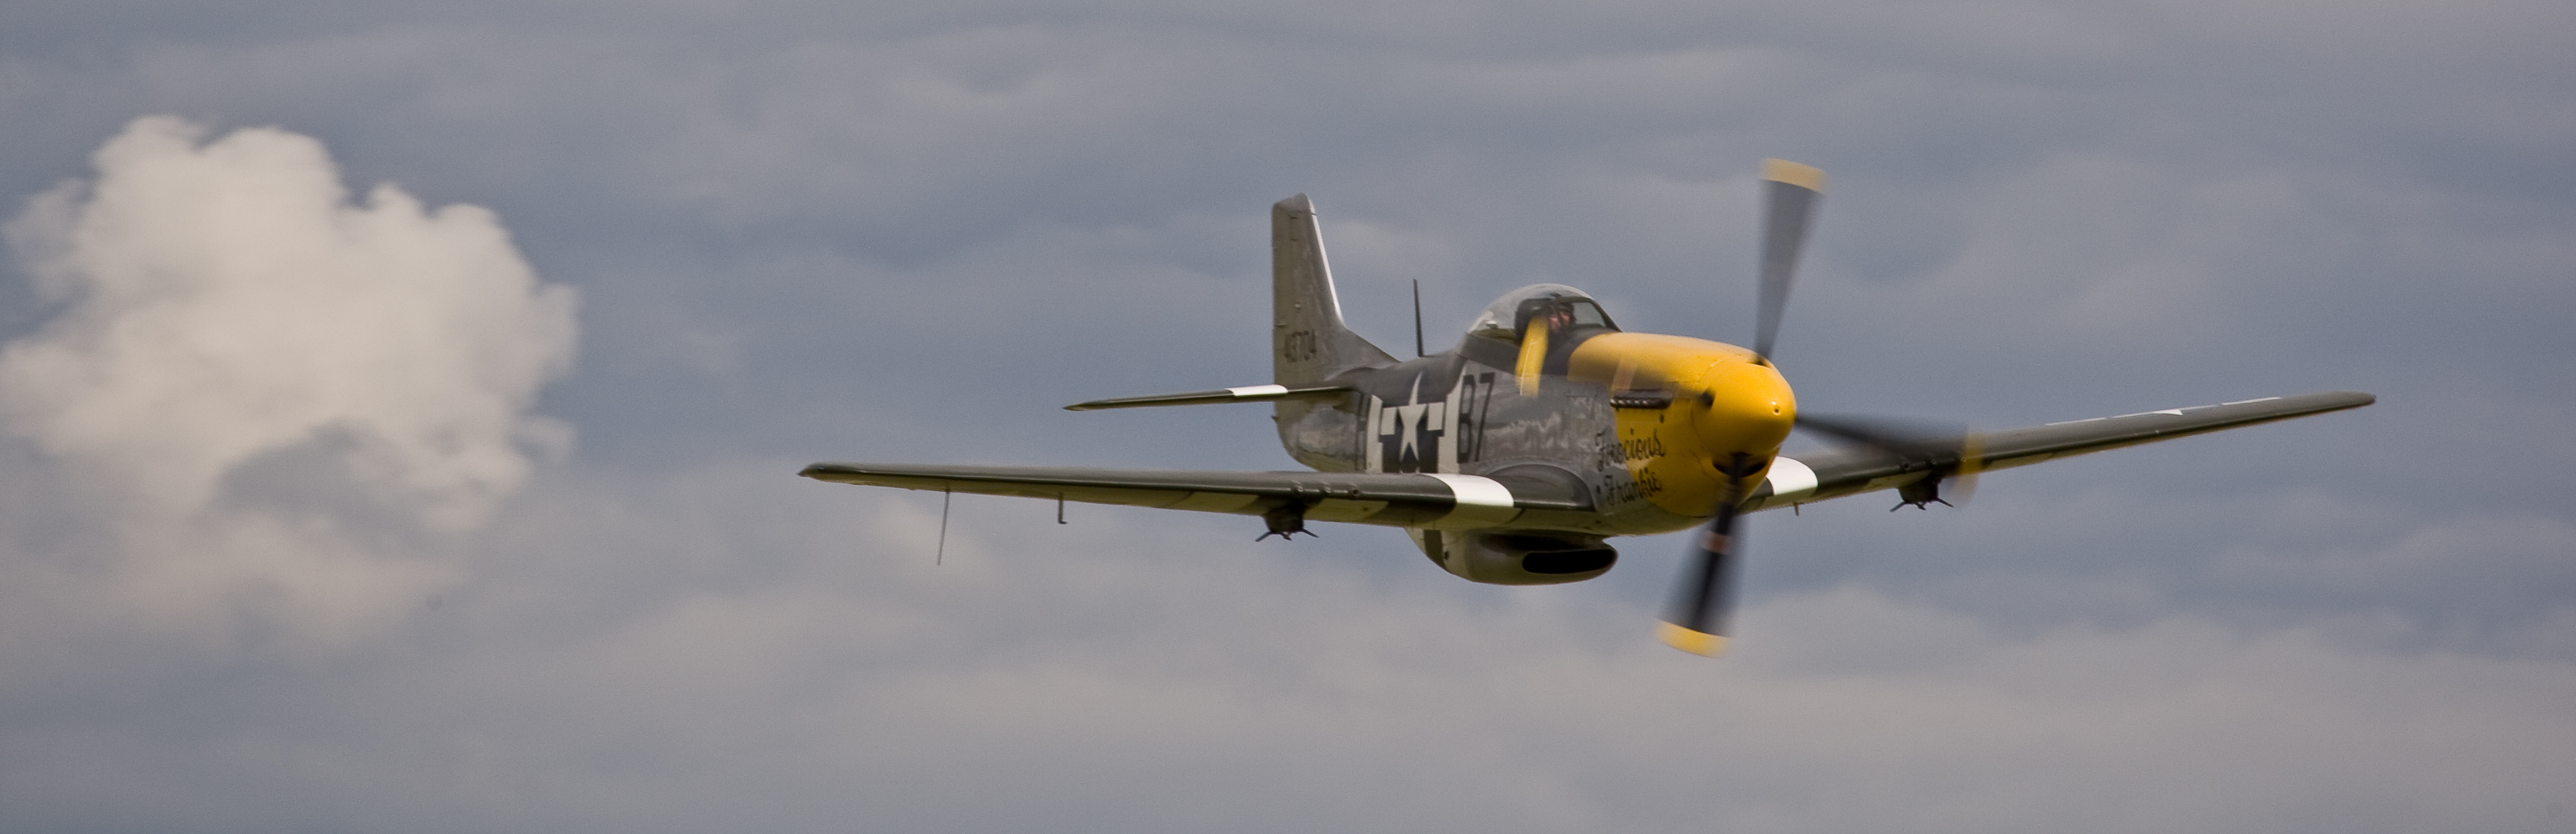 aircraft World War II P 51 Mustang   desktop wallpaper 3888x1259